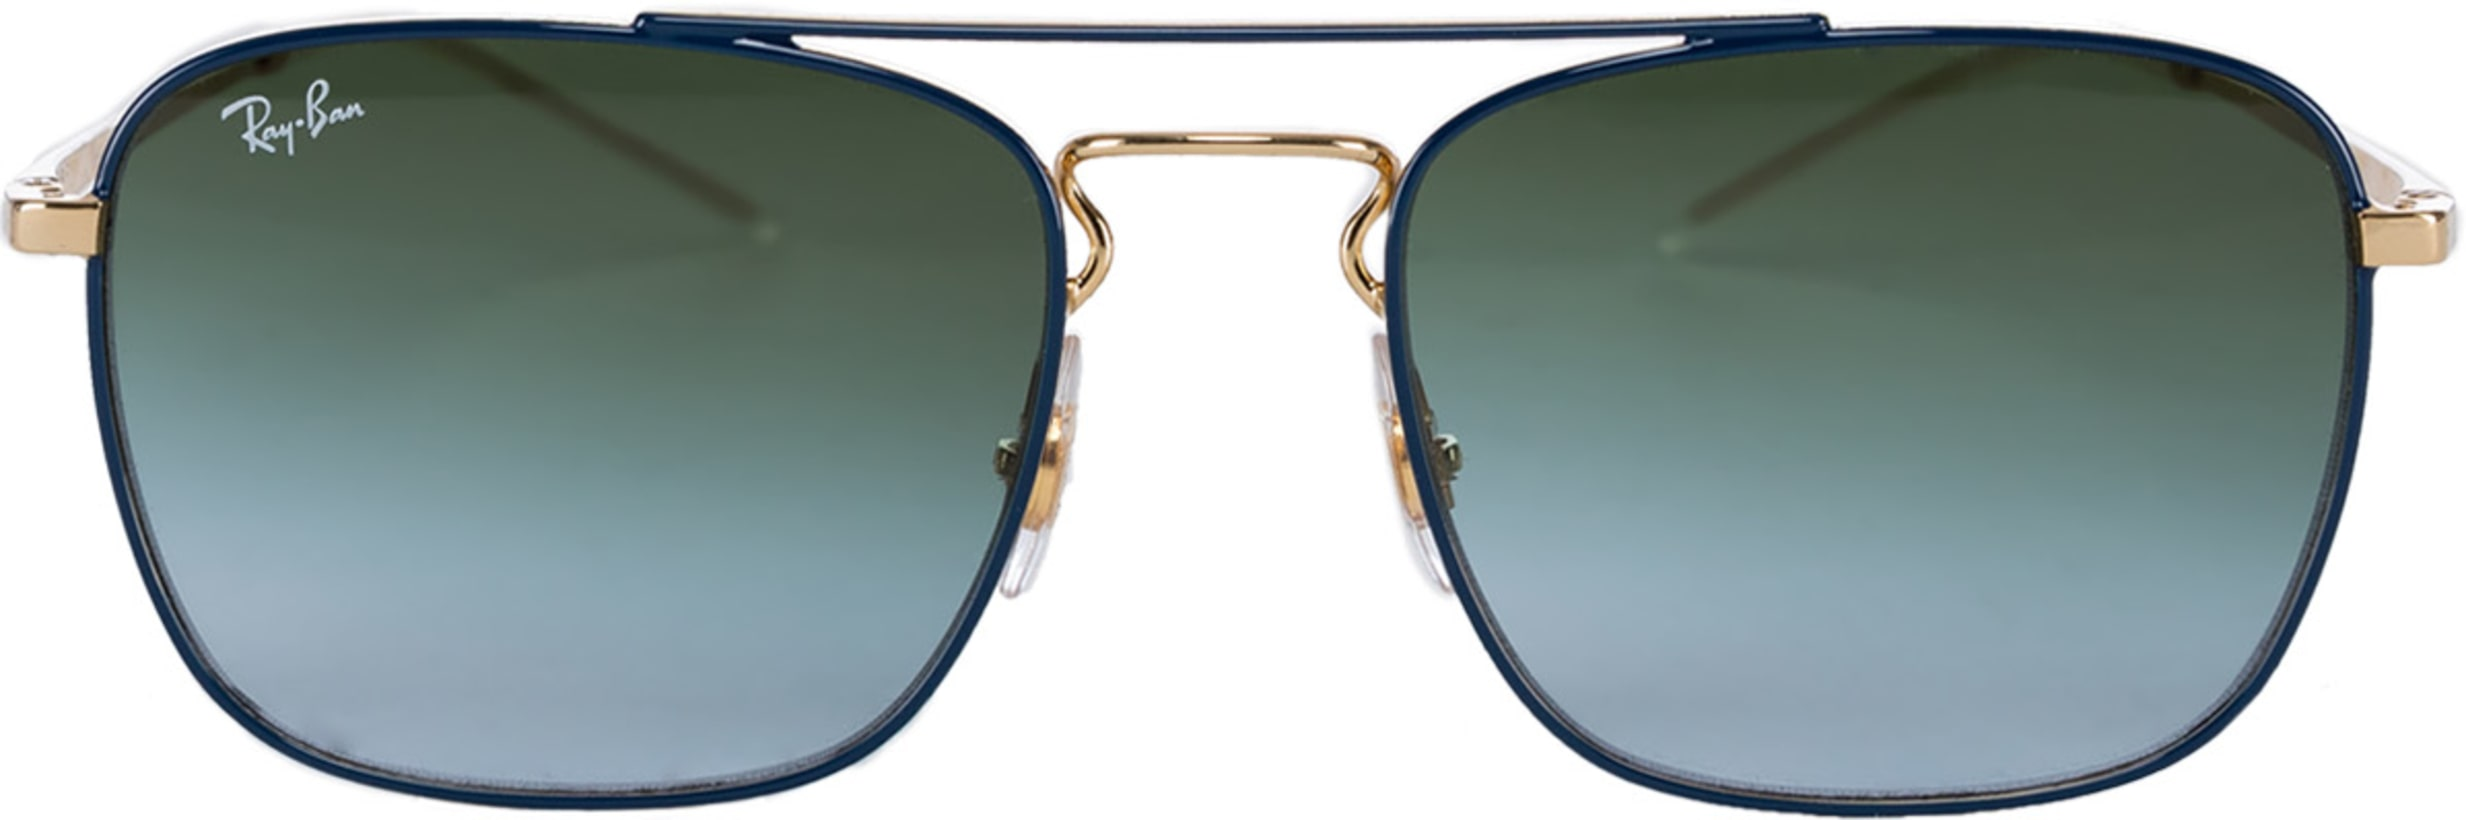 997ca93a4 Ray-Ban: Square Gradient Sunglasses - Blue Gold/Green Gradient ...